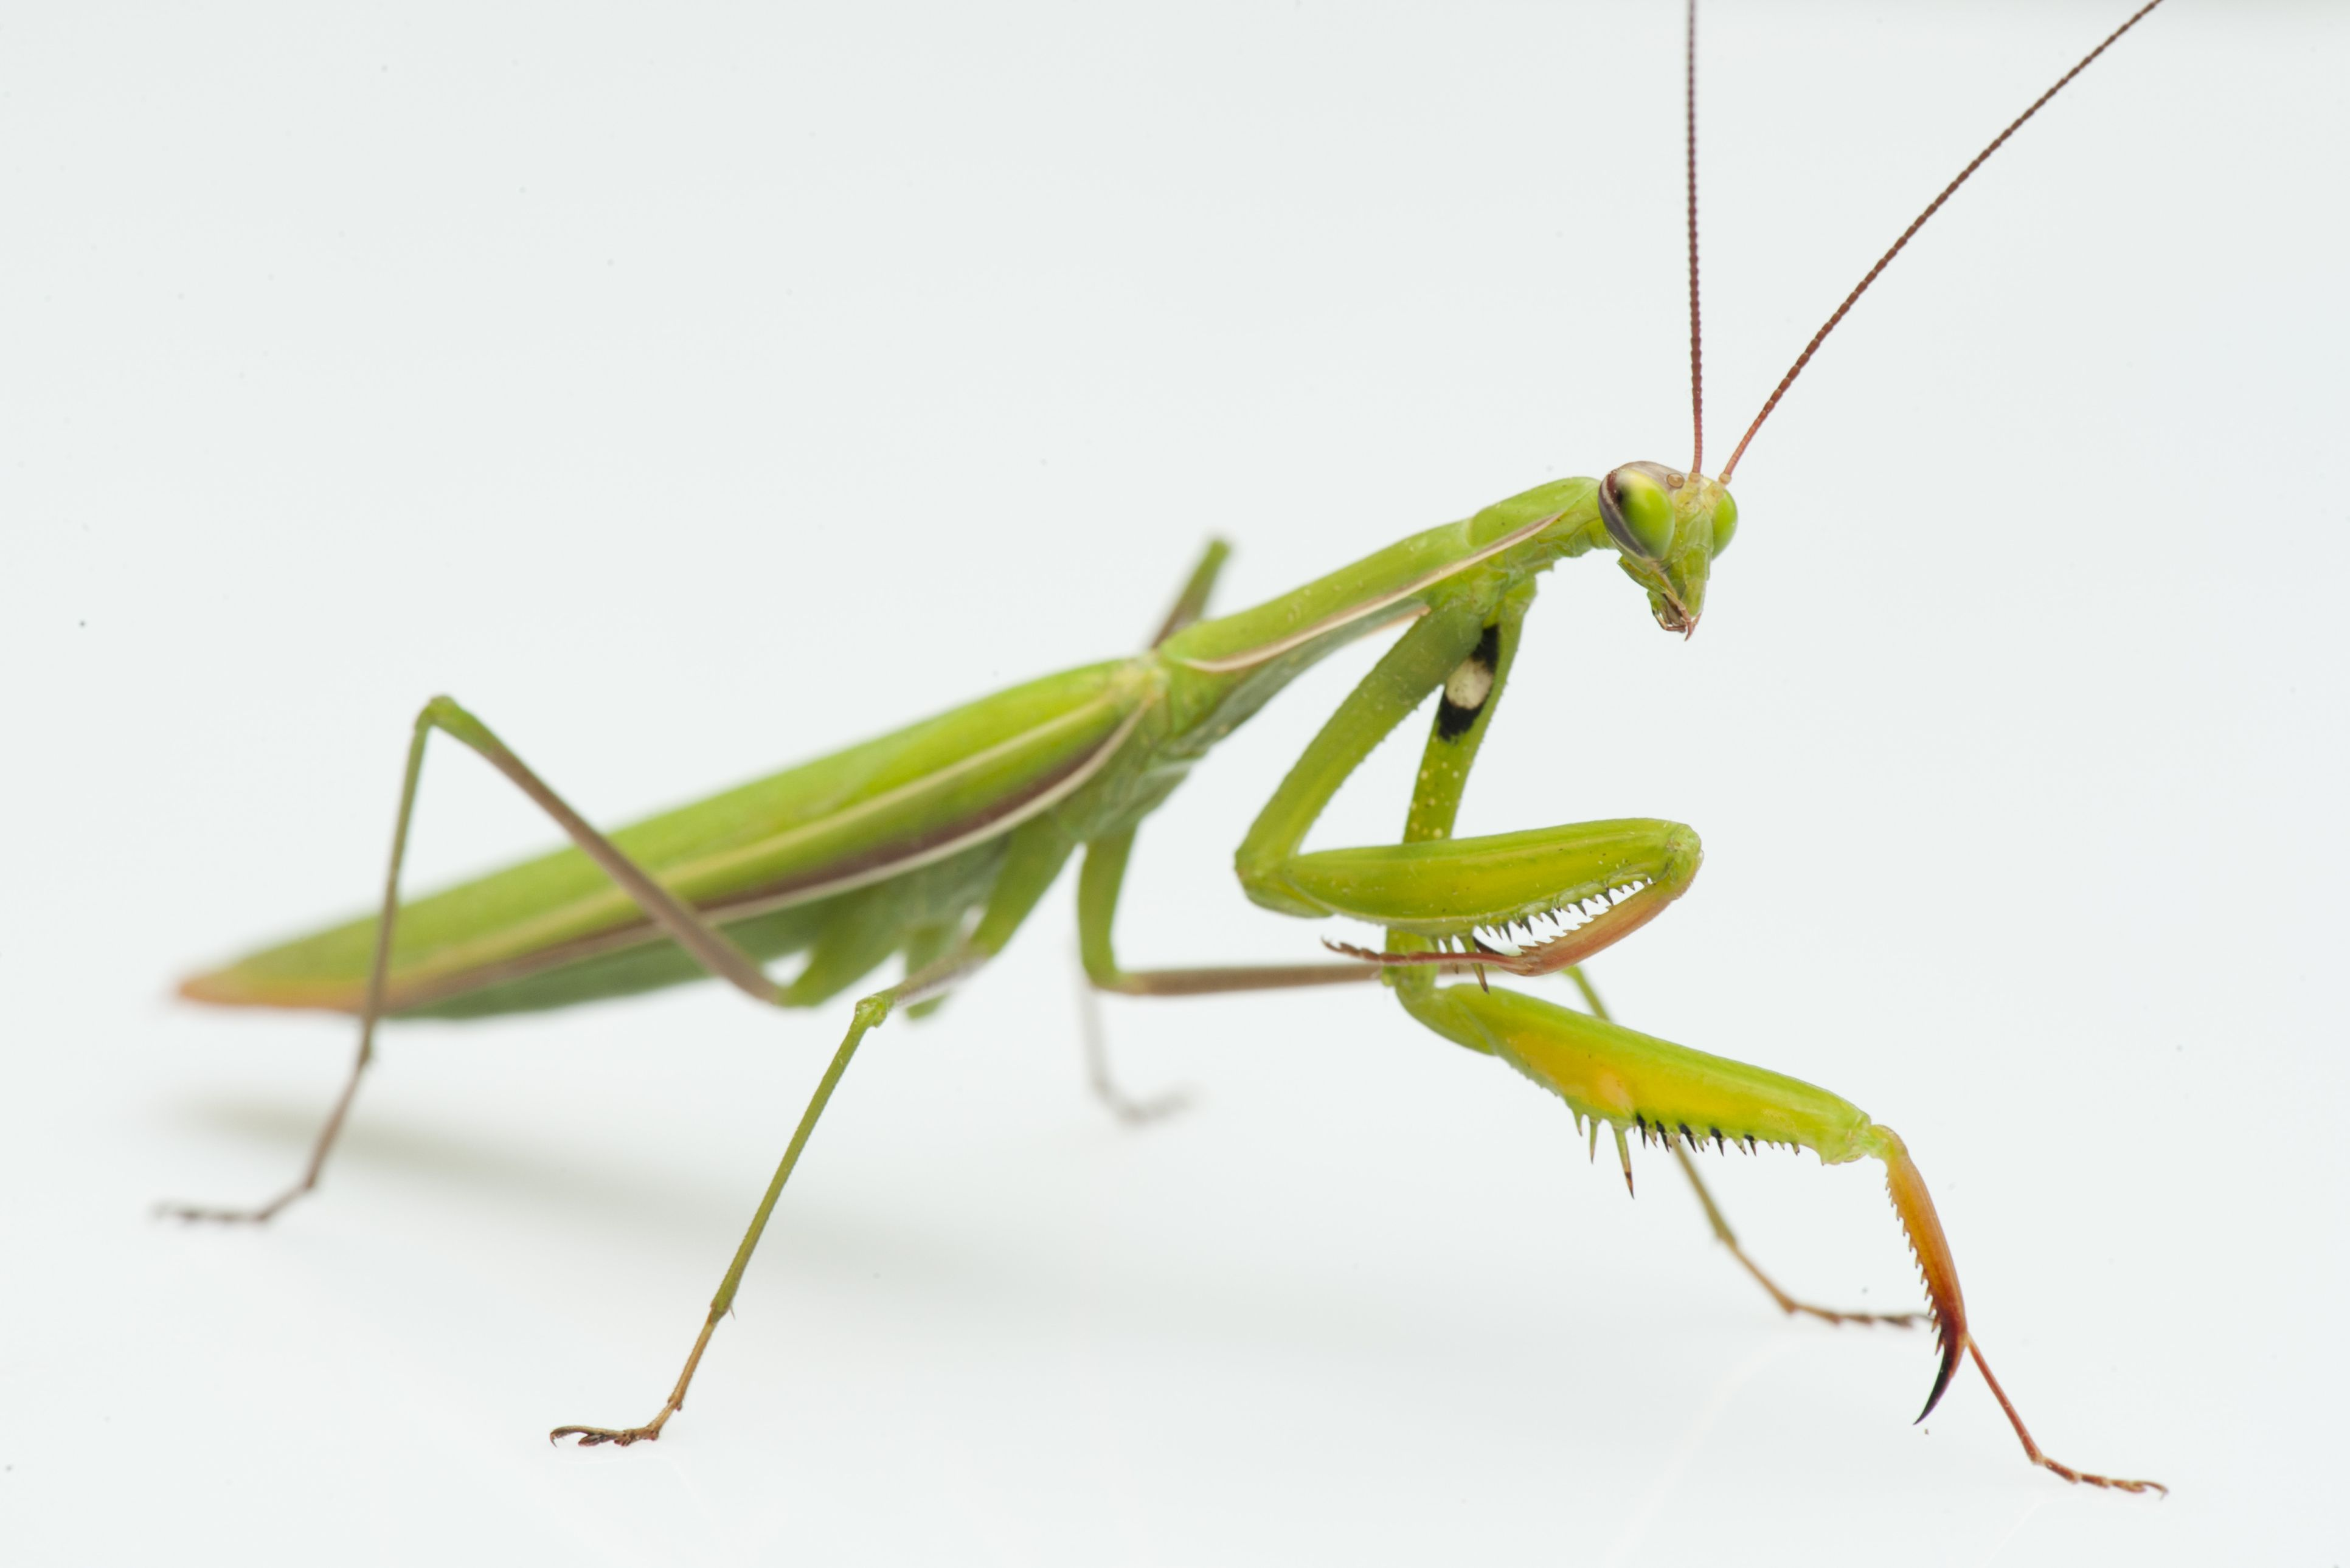 Superorder Dictyoptera, Roaches and Mantids